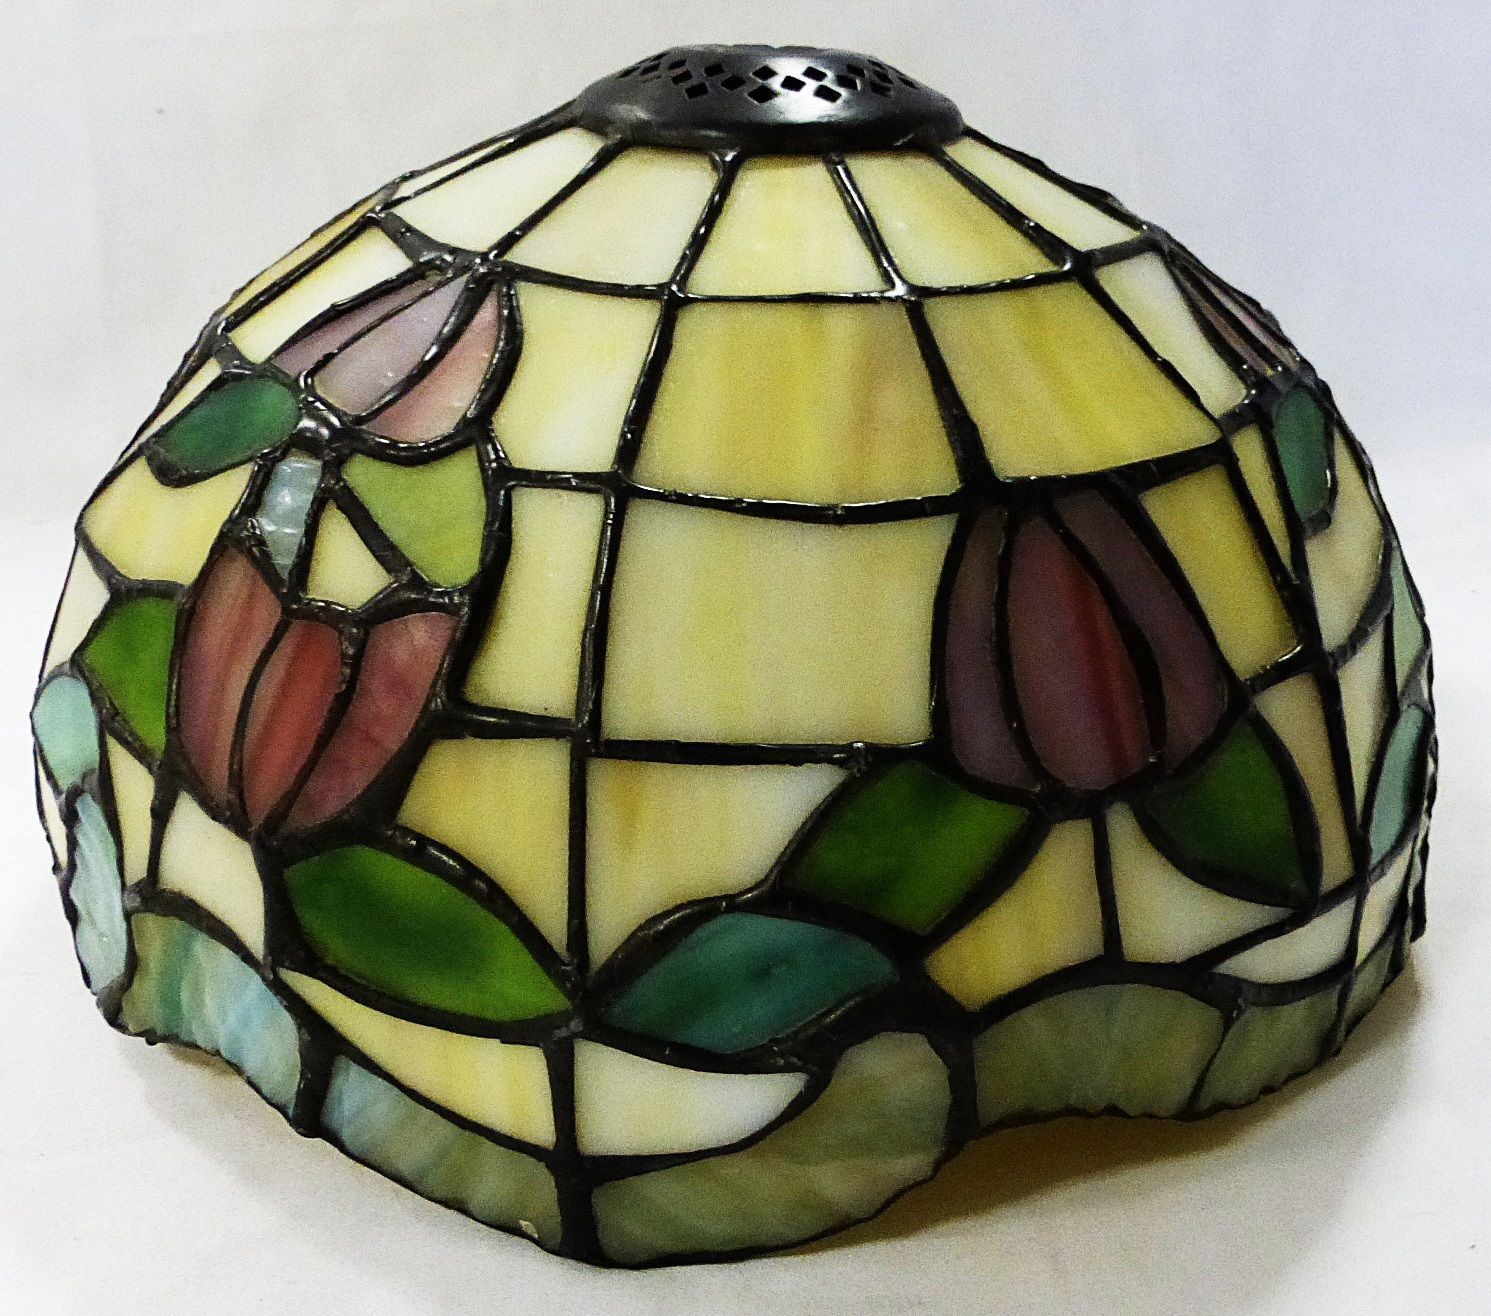 Tiffany style lamp shade leaded Stained glass heavy